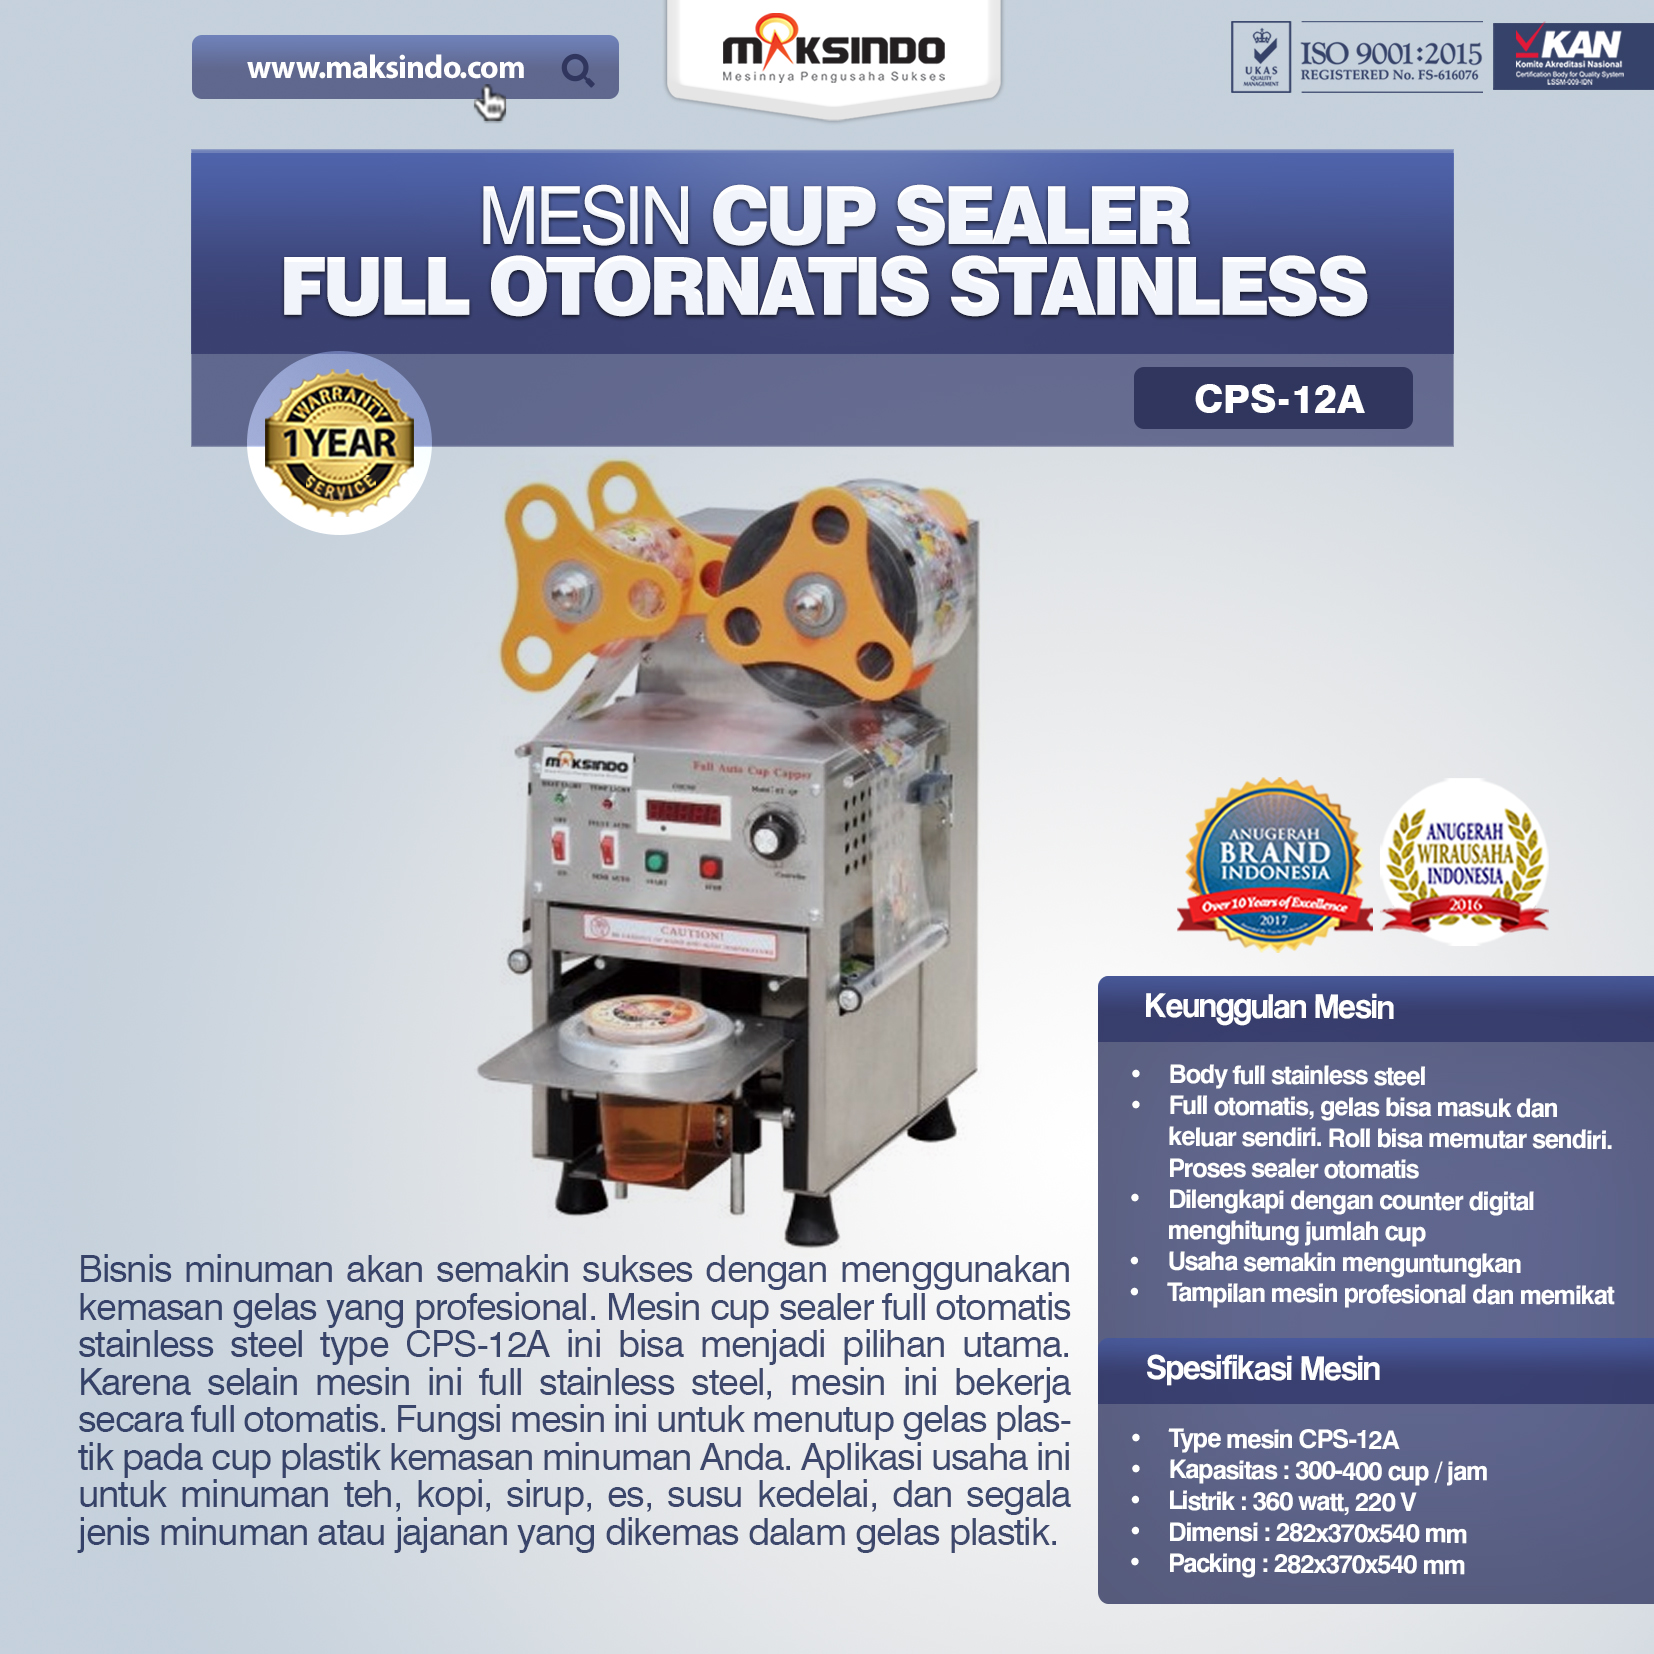 Mesin Cup Sealer Full Otornatis Stainless CPS-12A